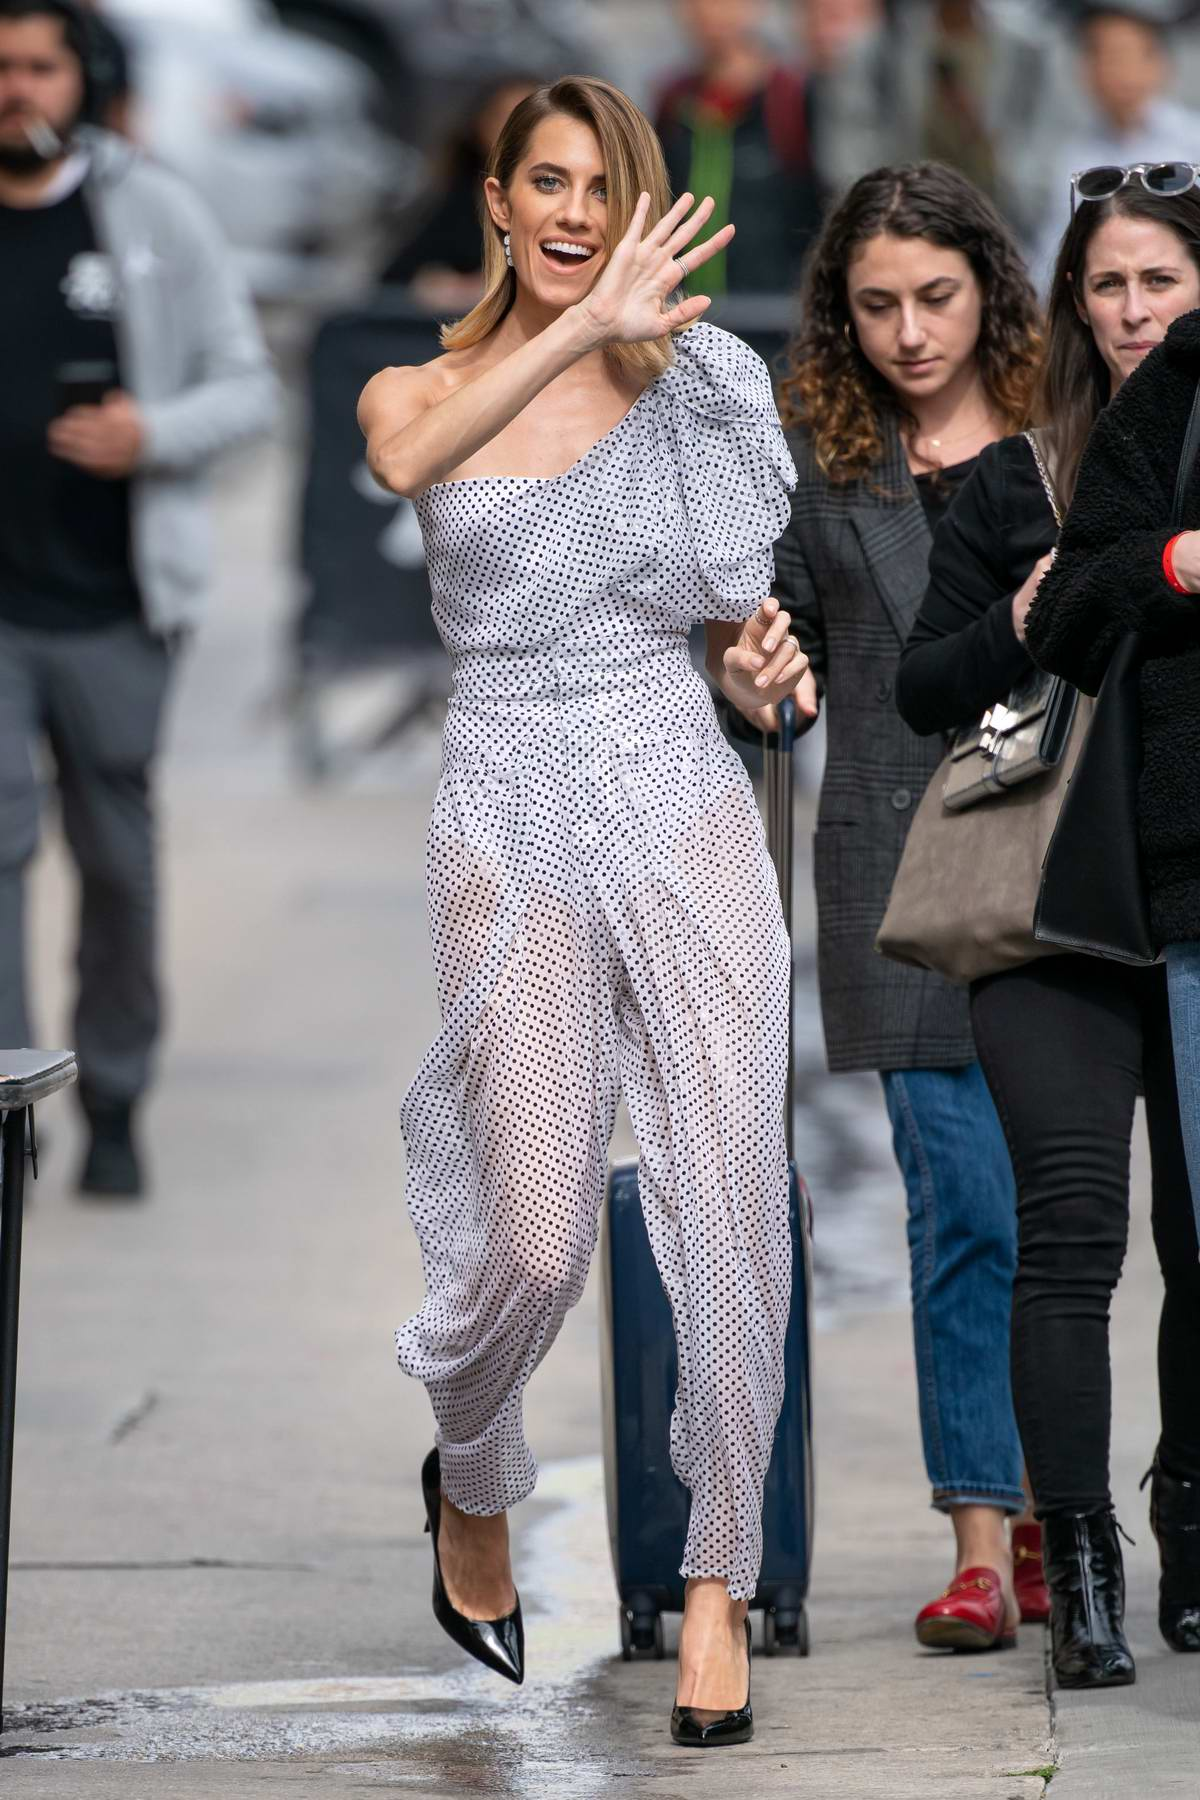 Allison Williams waves to the camera as she arrives for an appearance on Jimmy Kimmel Live! in Hollywood, California